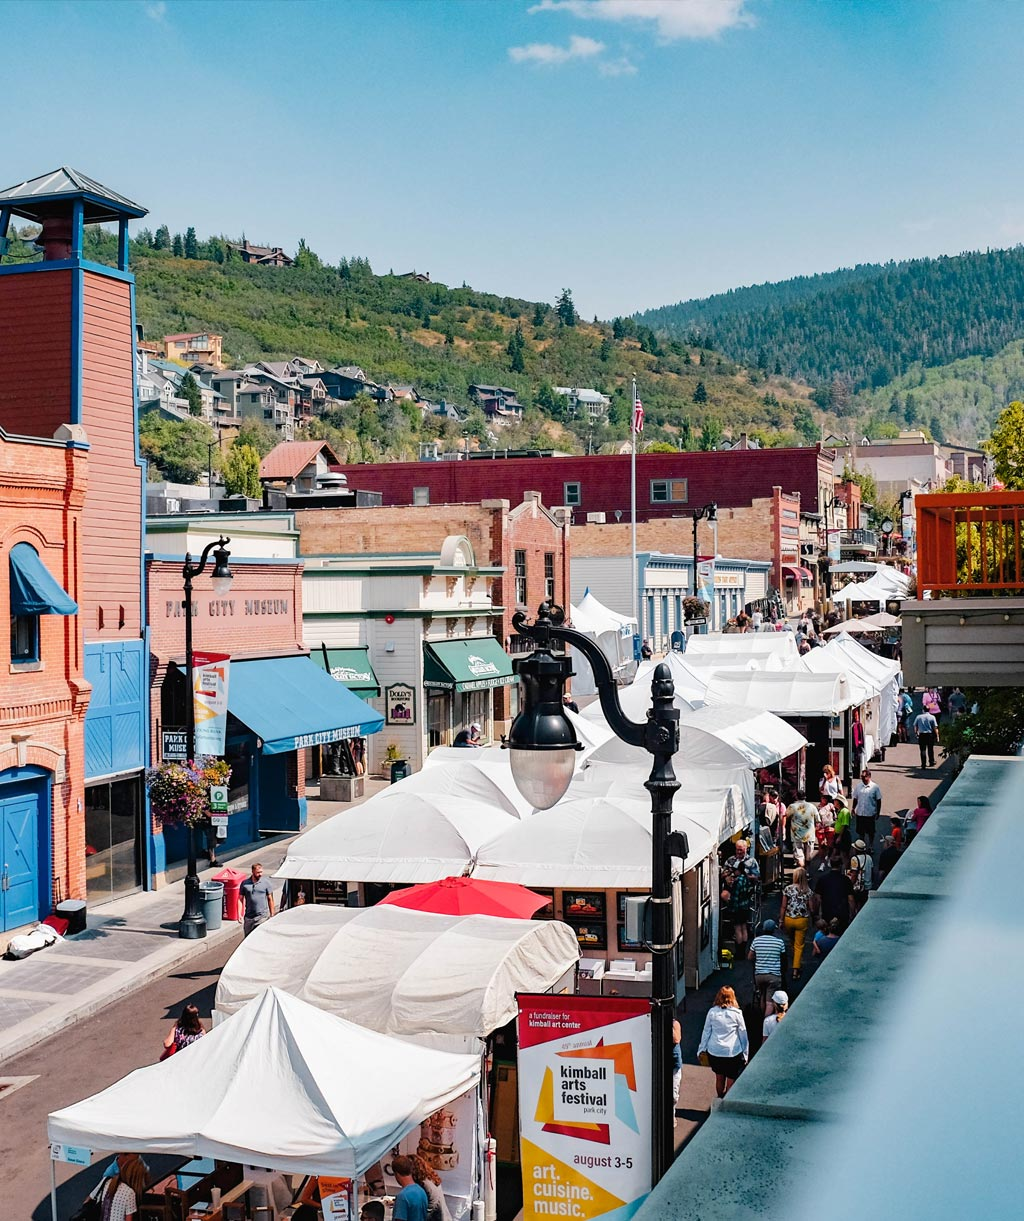 Looking up historic main street in park city utah, the kimball arts festival is taking place in mid summer